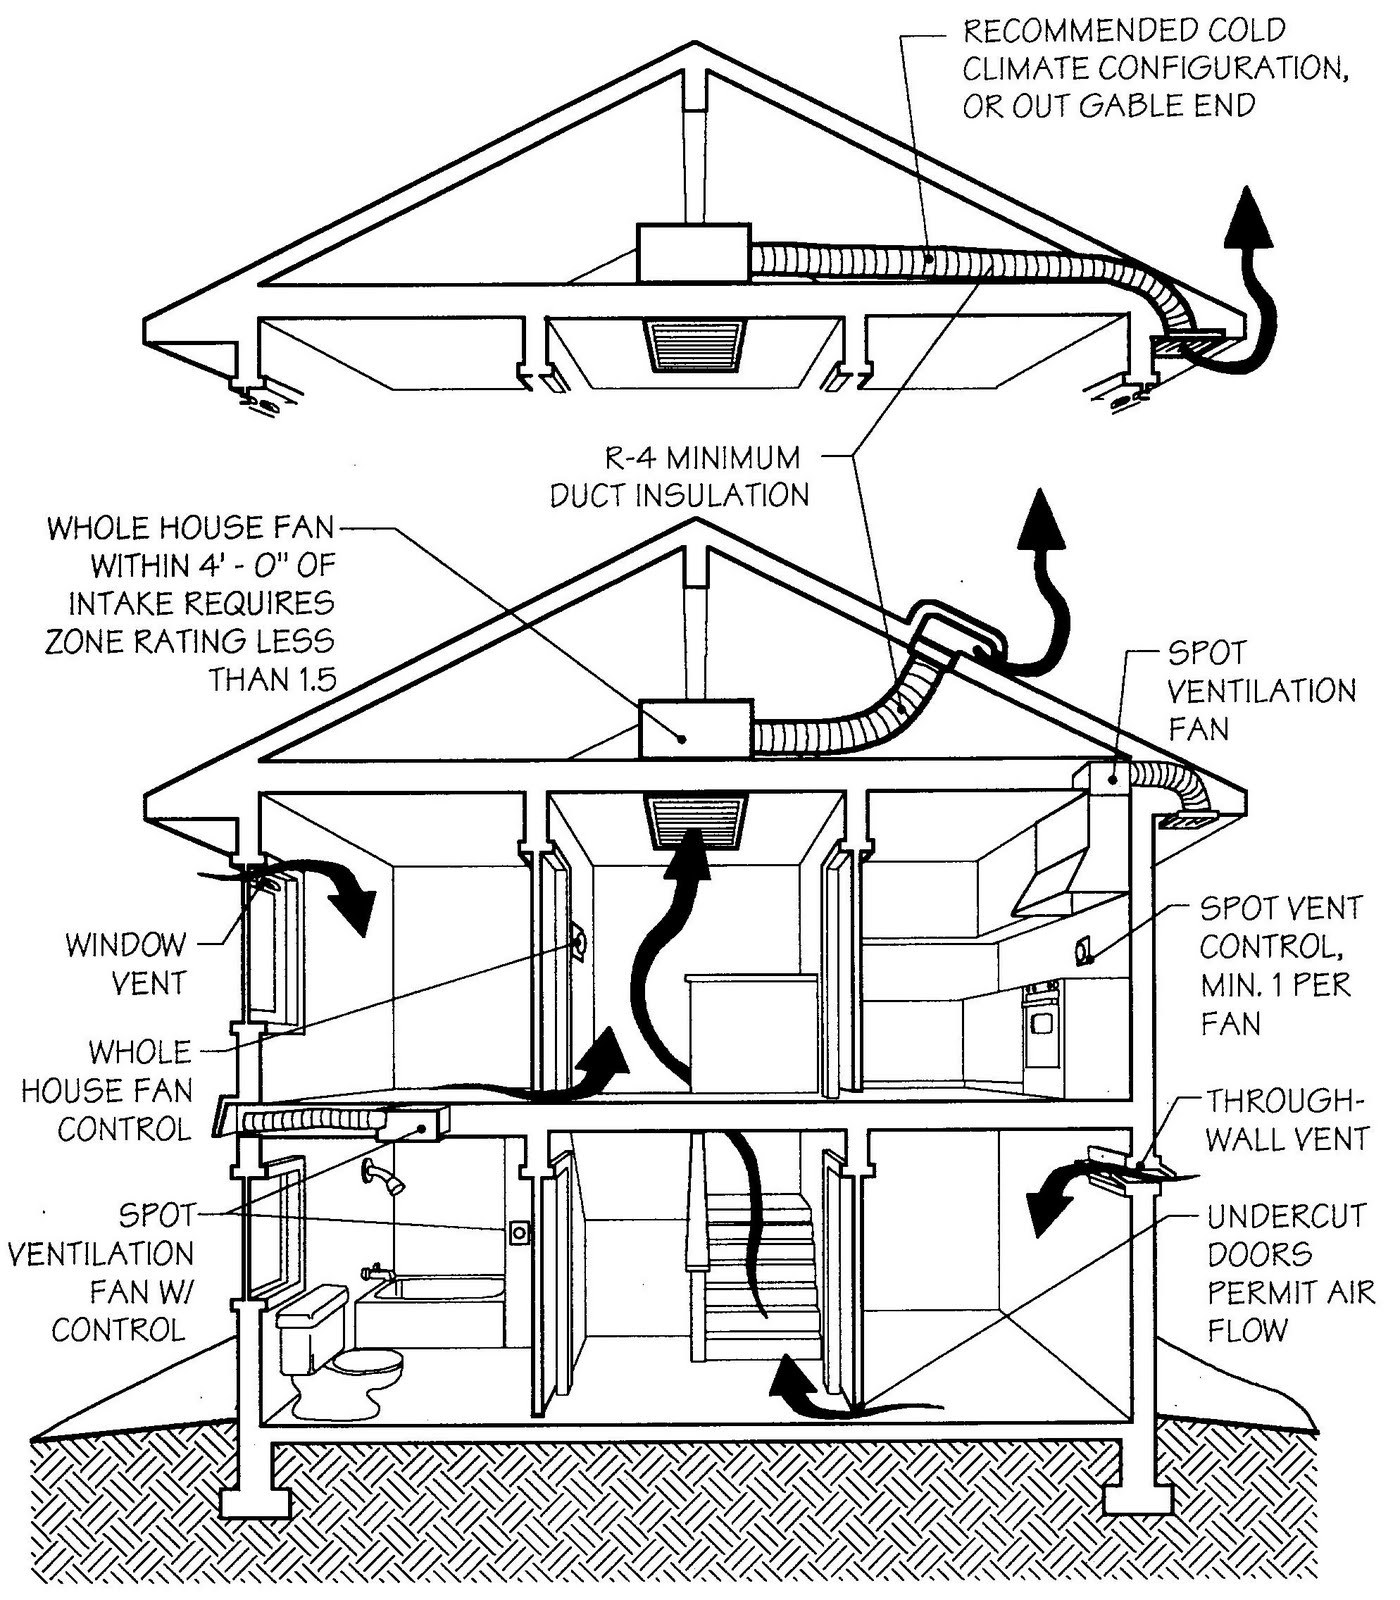 mechanical handz: historic buildings were ventilated naturally